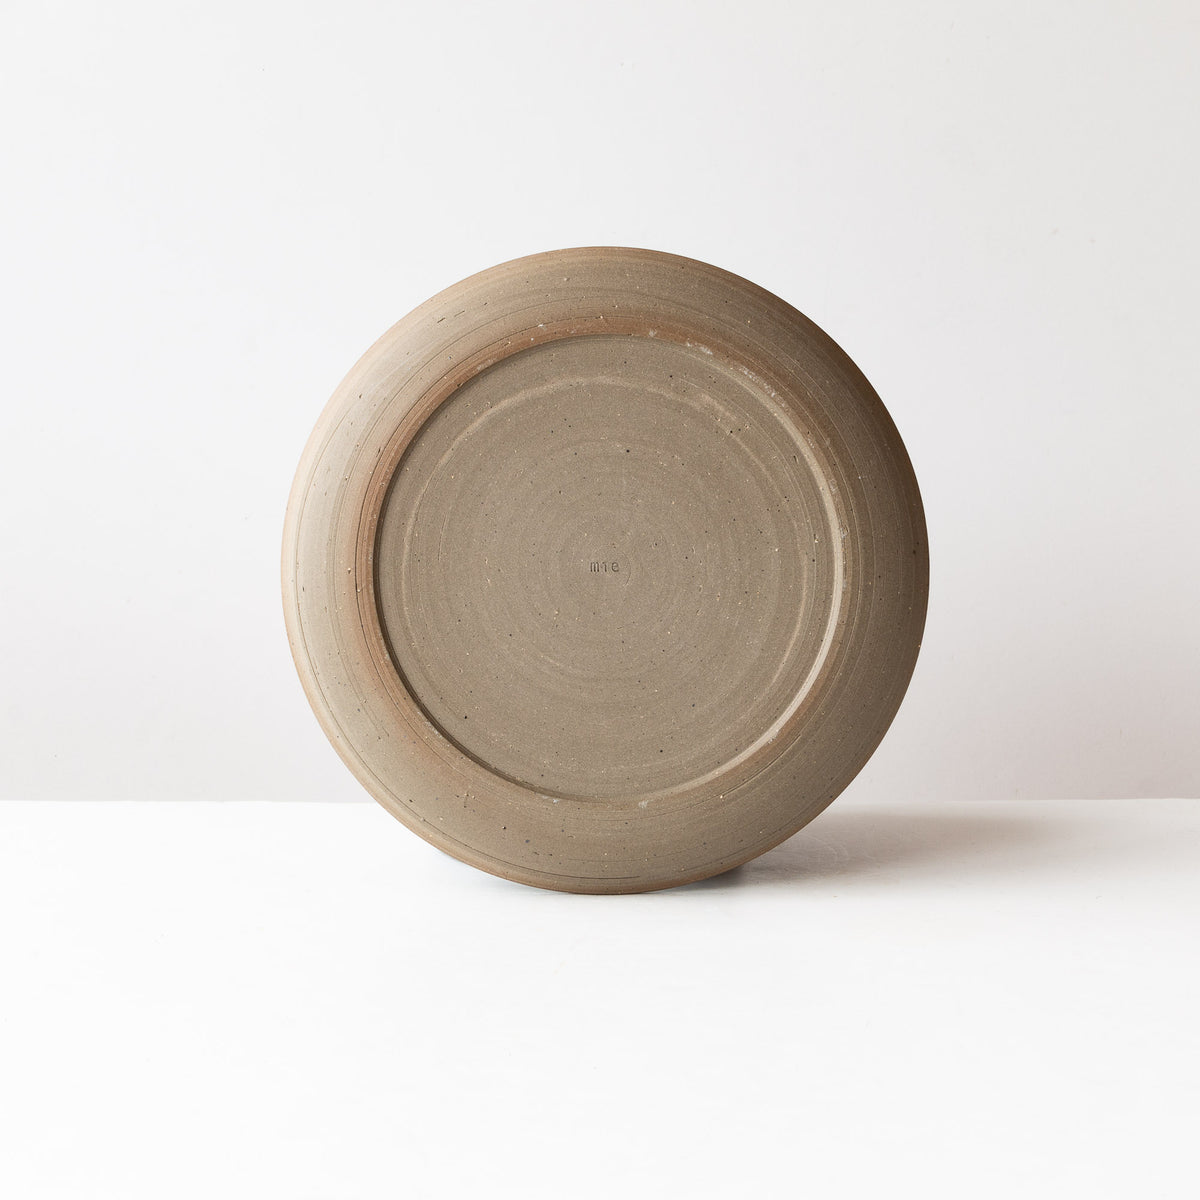 Back View - Handmade Grey Stoneware Dinner Plate - Sold by Chic & Basta